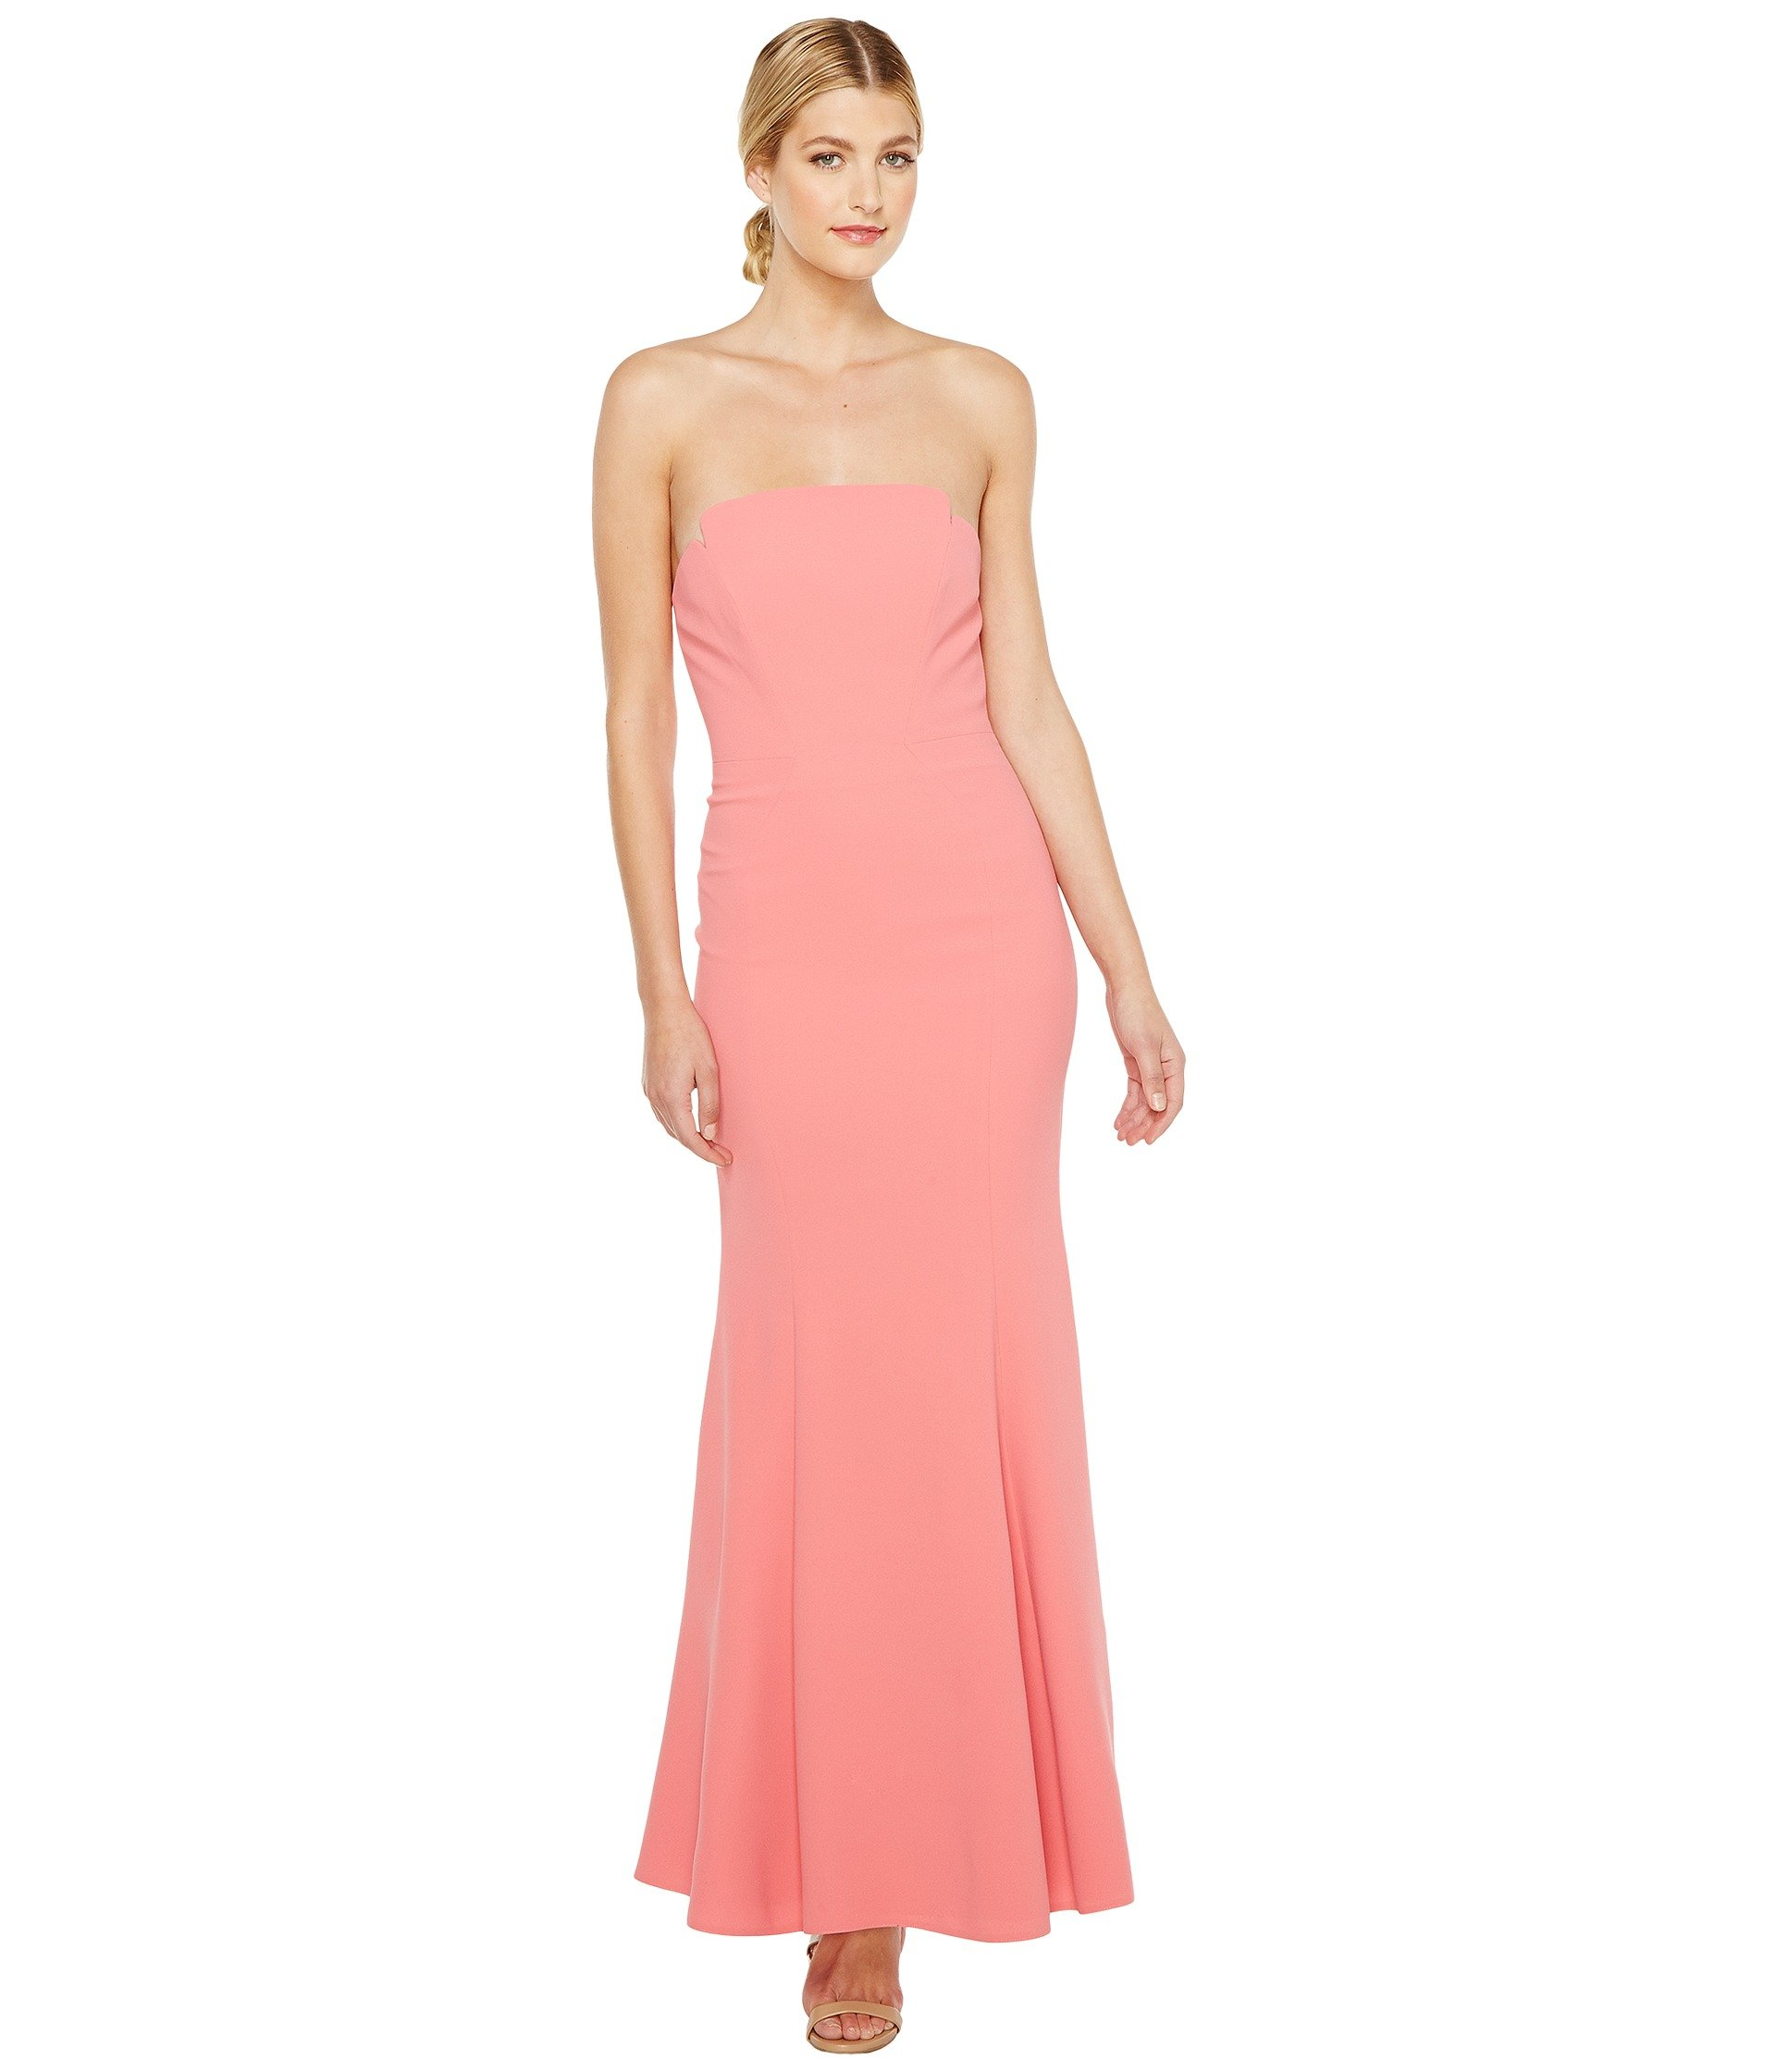 Harlow Strapless Hourglass Gown